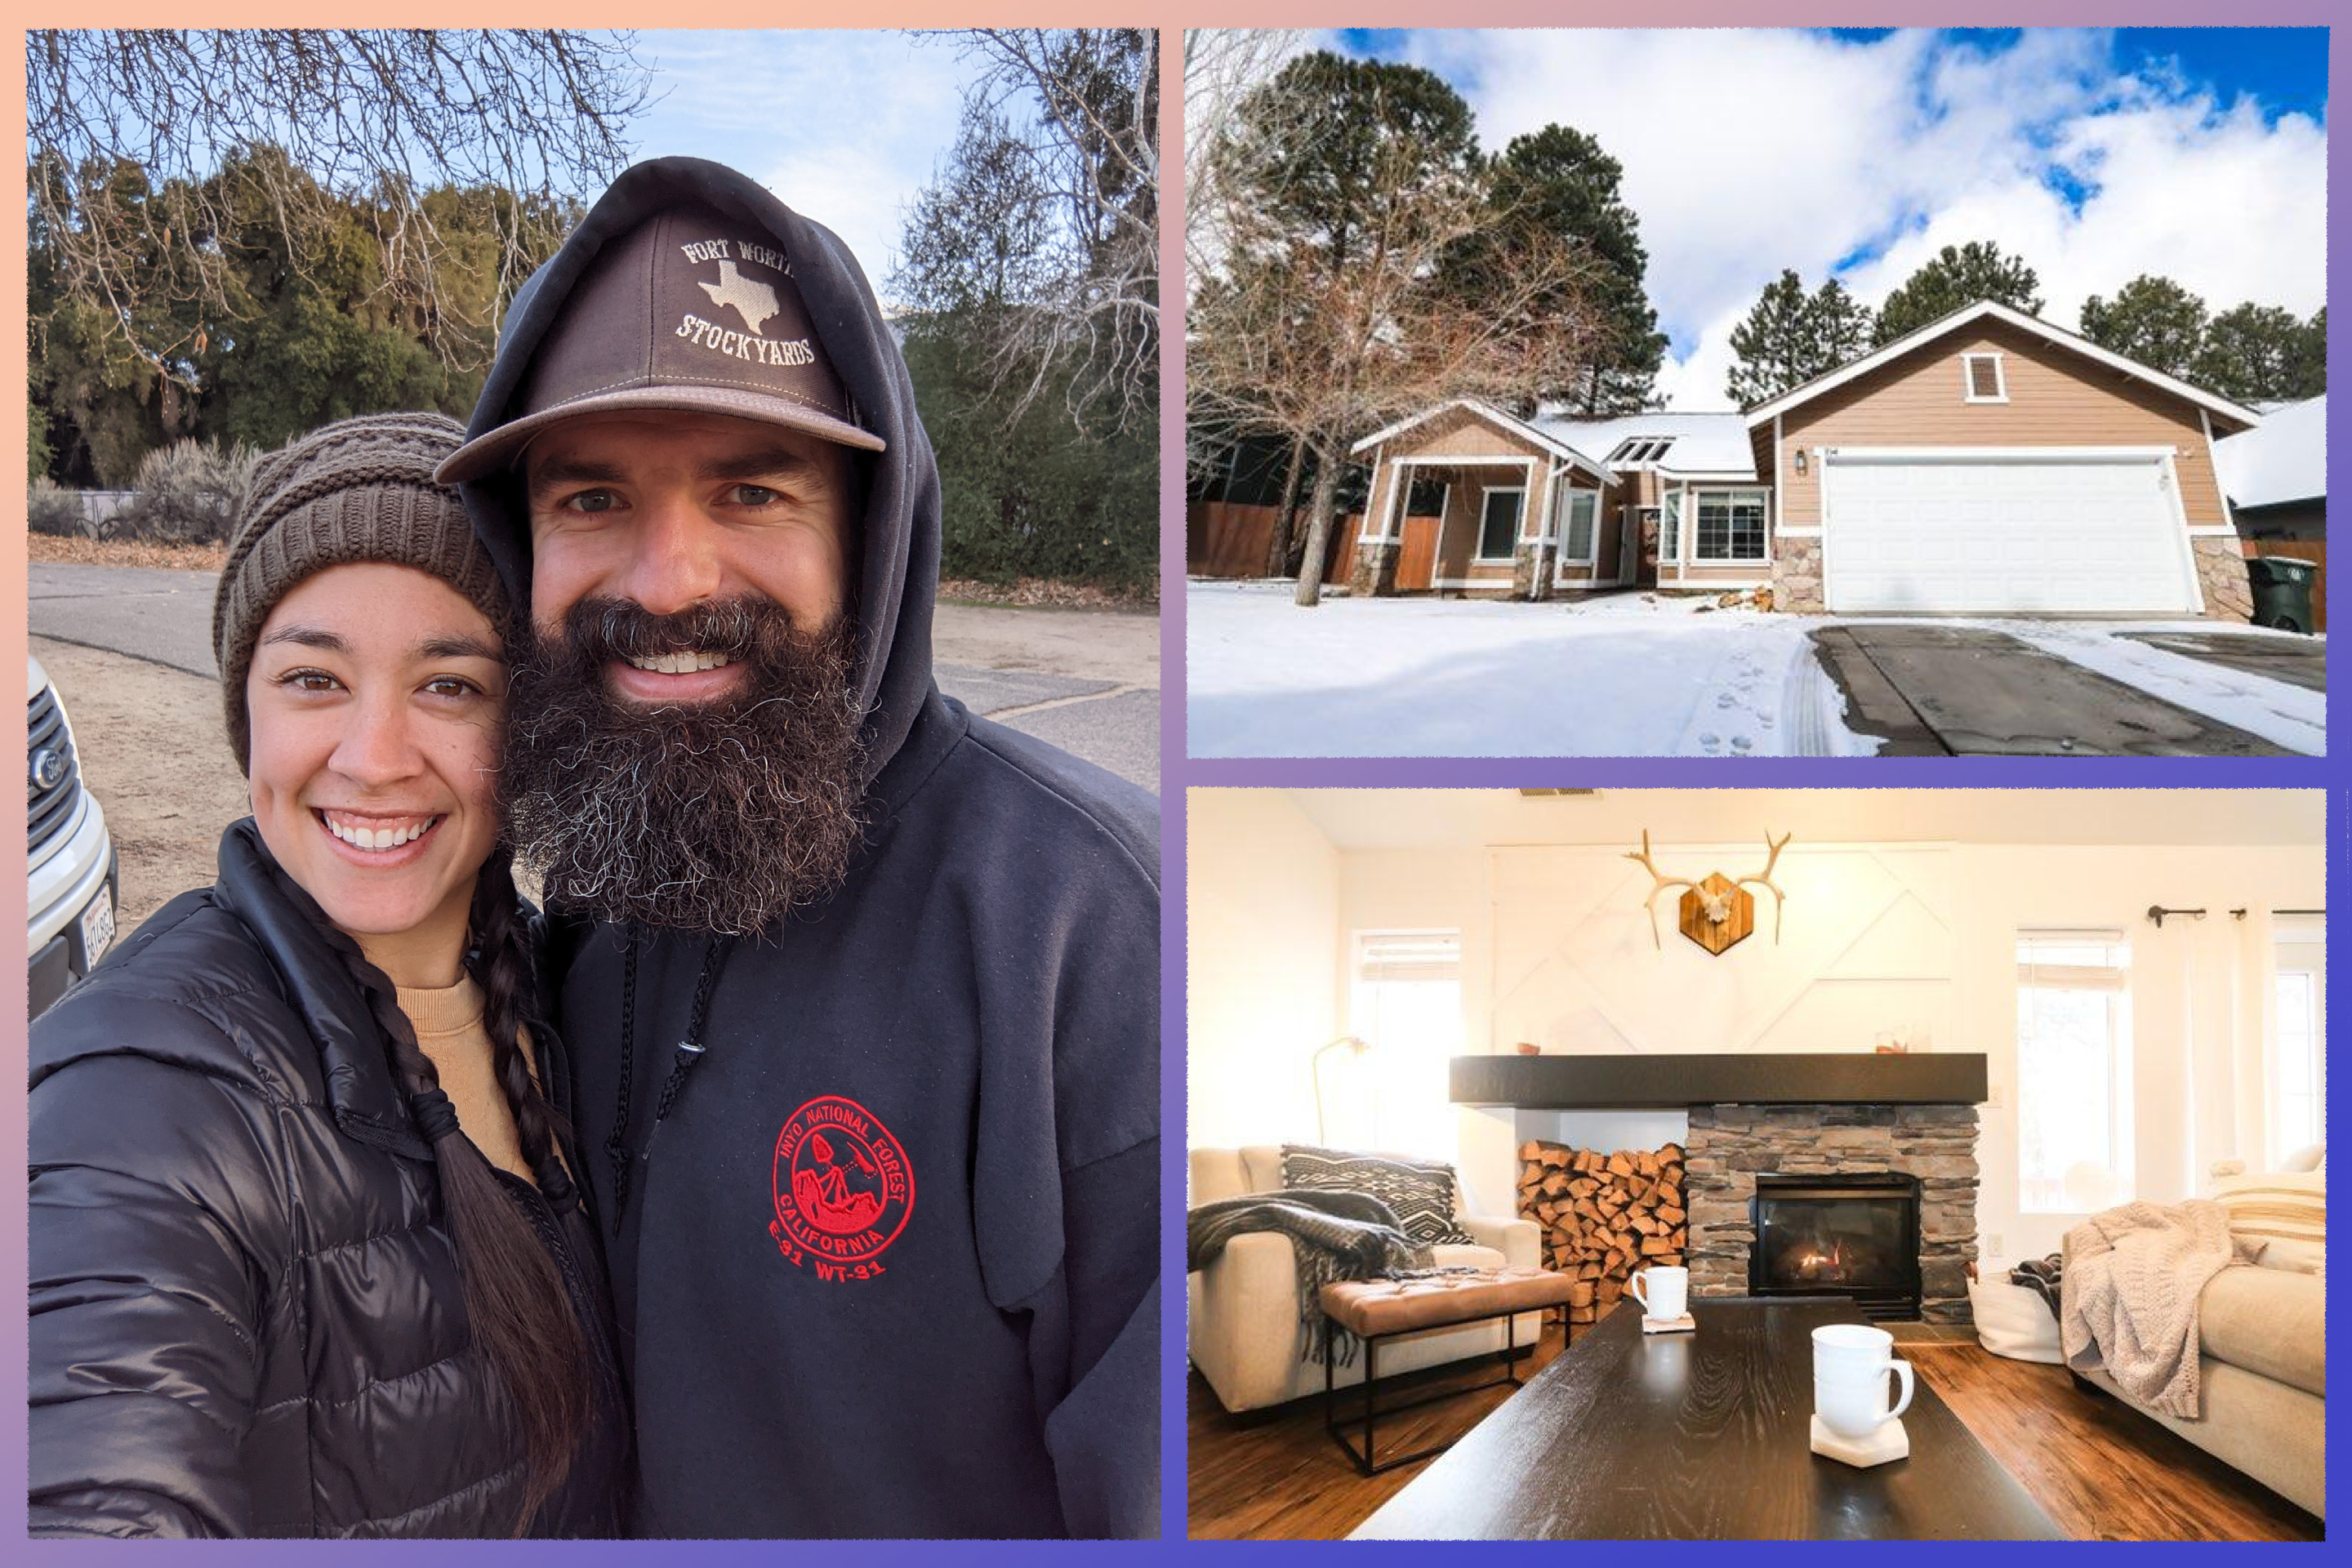 Photo of Scott Hatch and his wife, interior and exterior of his home.